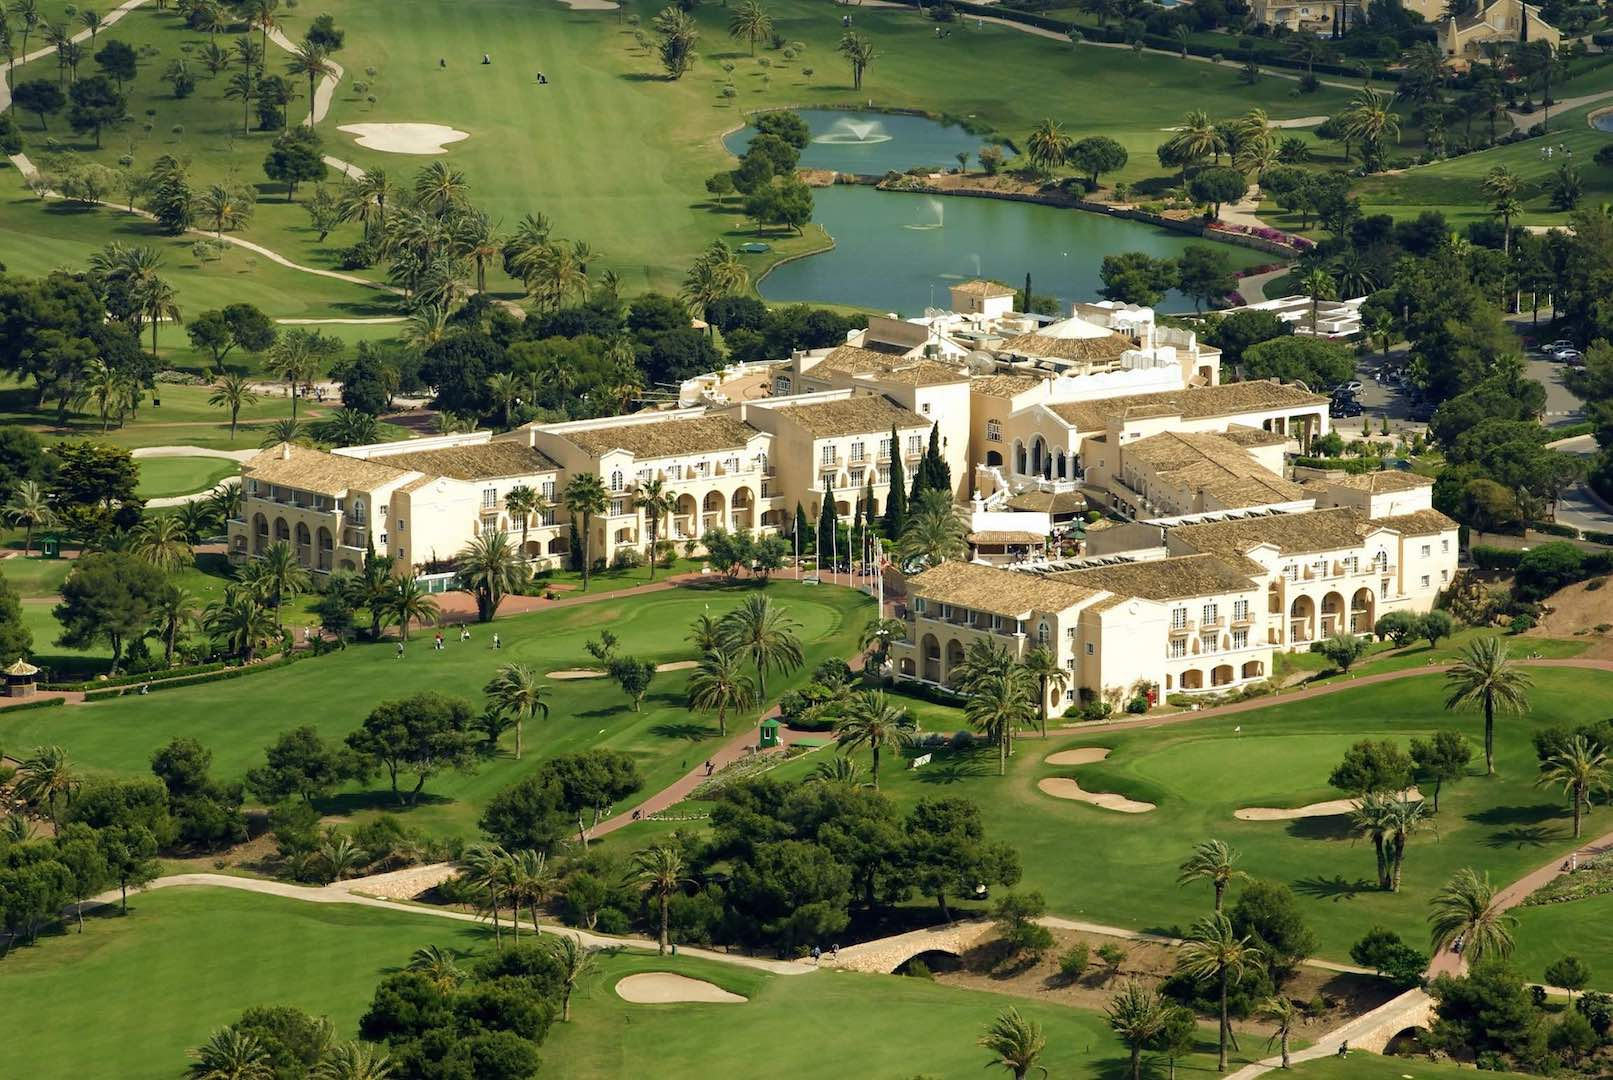 La Manga to host 5th edition